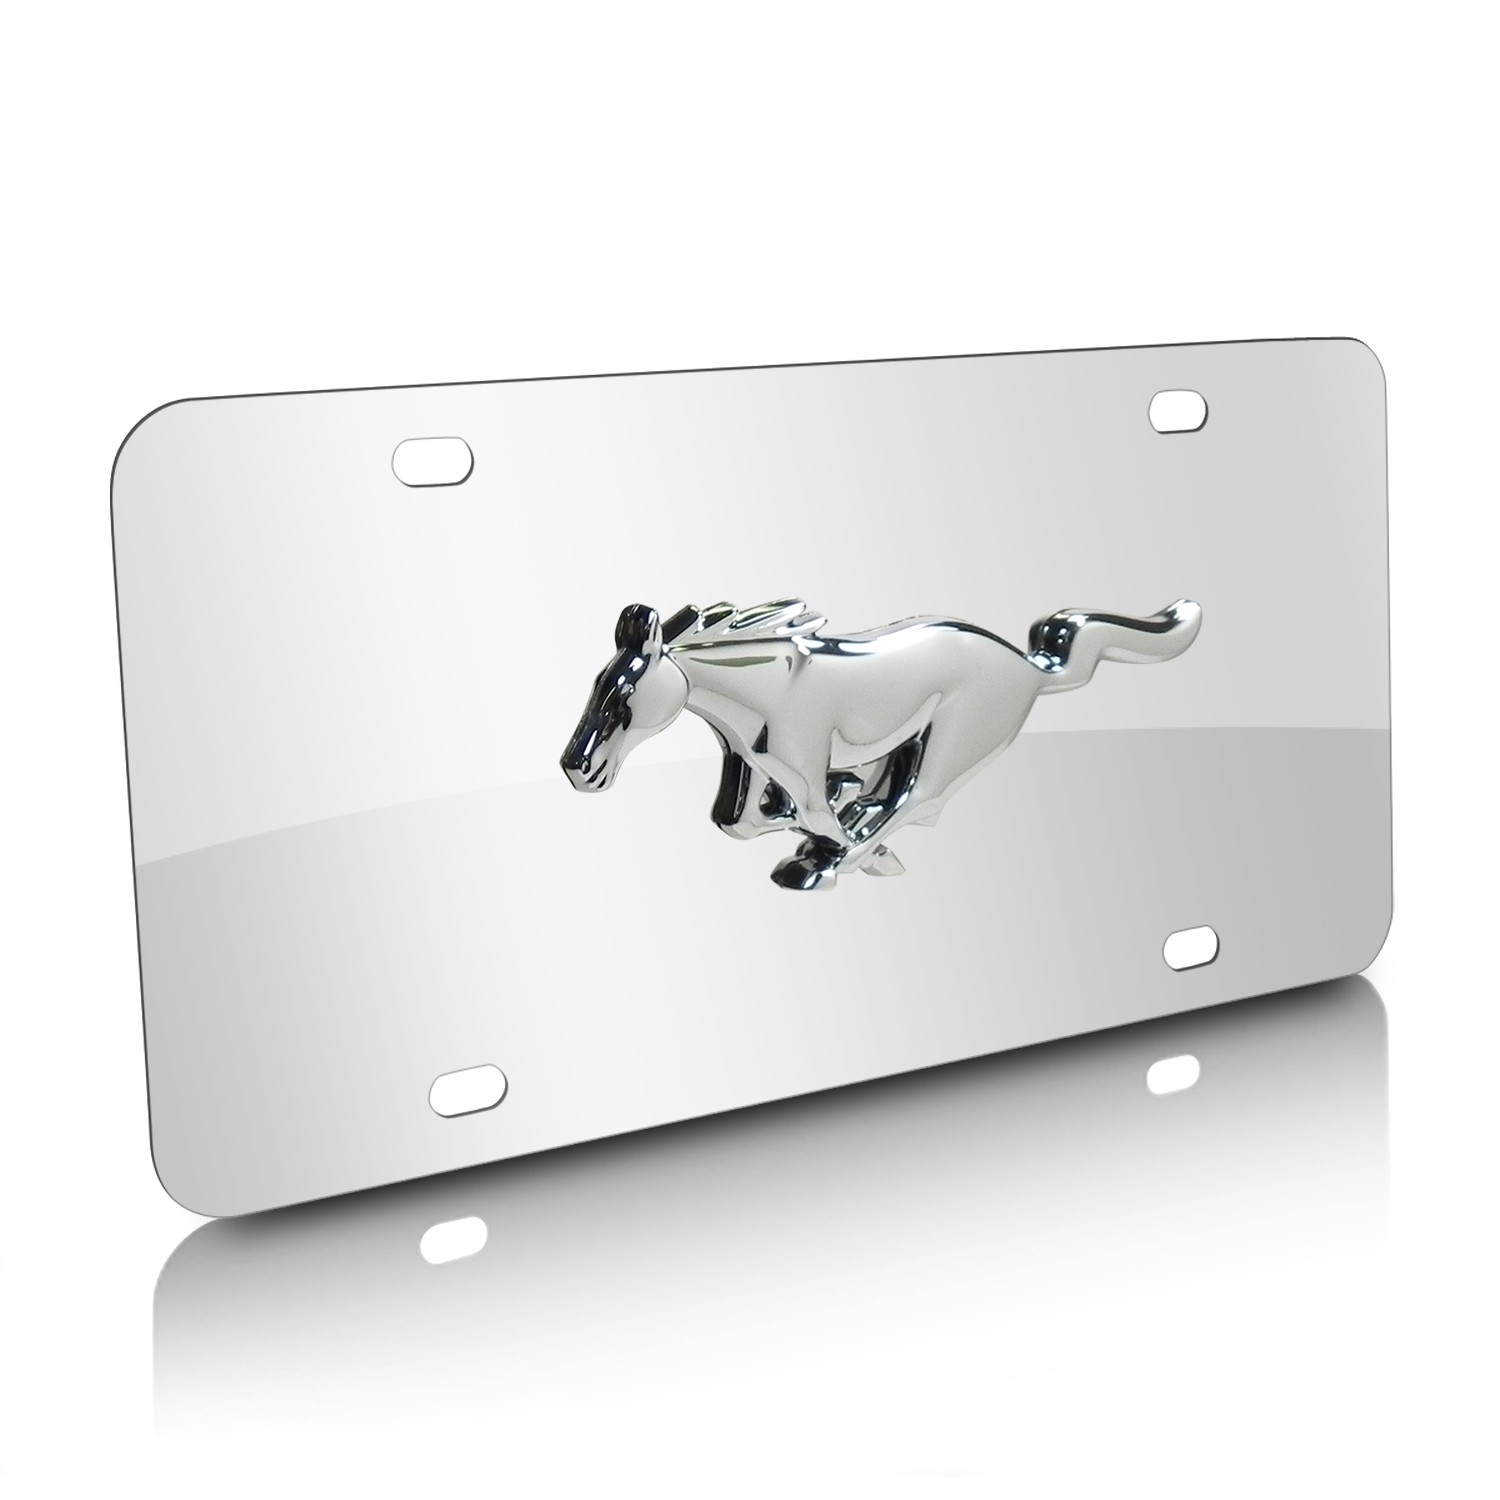 Ford Mustang 3D Logo Chrome Stainless Steel License Plate